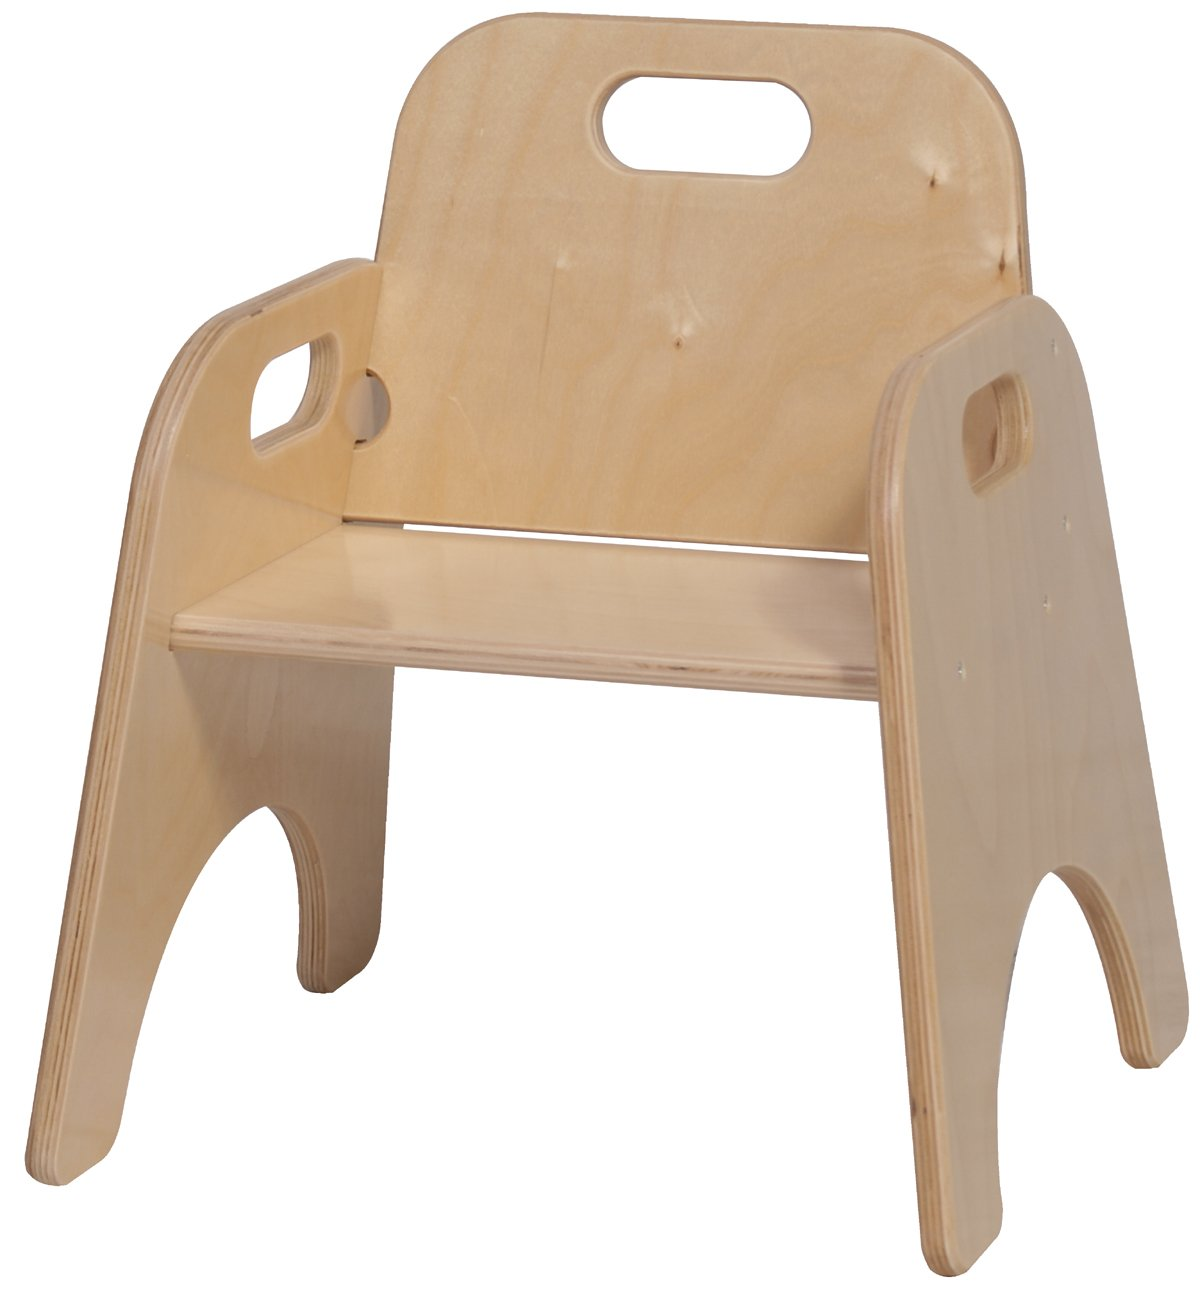 Steffy Wood Products 9-Inch Toddler Chair 61Ft2bM4WSL._SL1290_